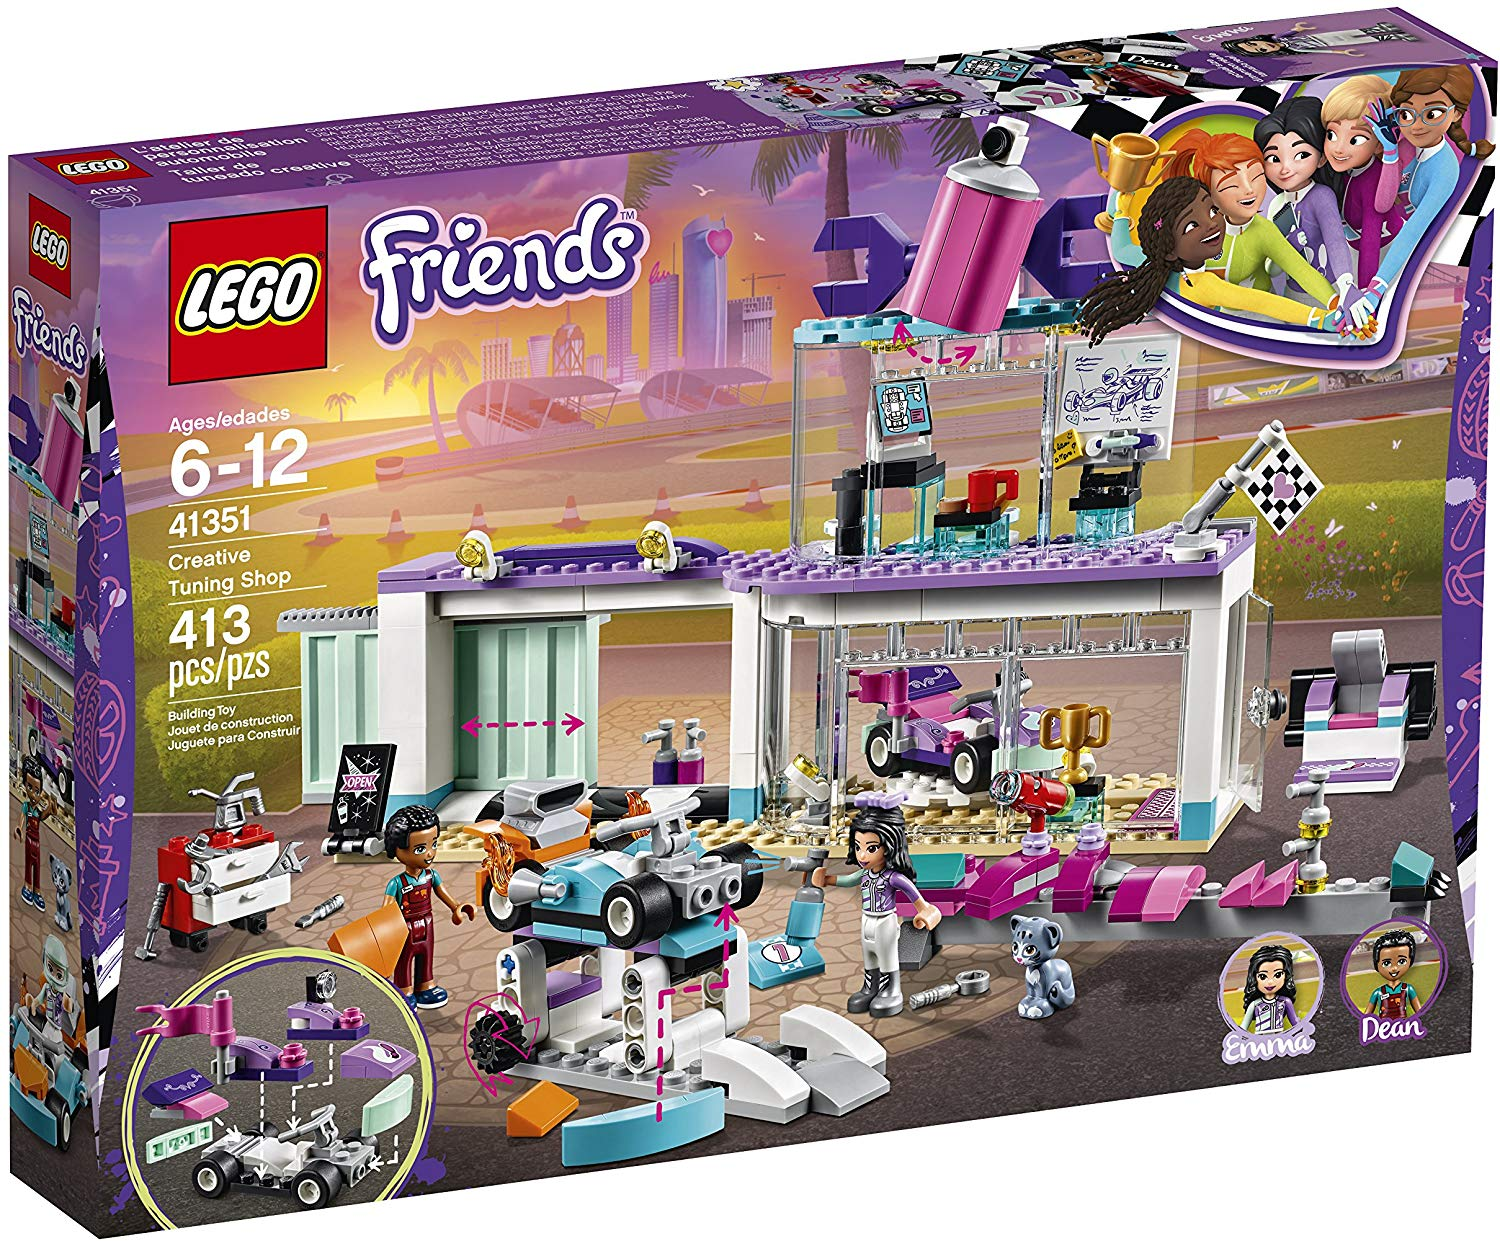 LEGO Friends Creative Tuning Shop - JKA Toys